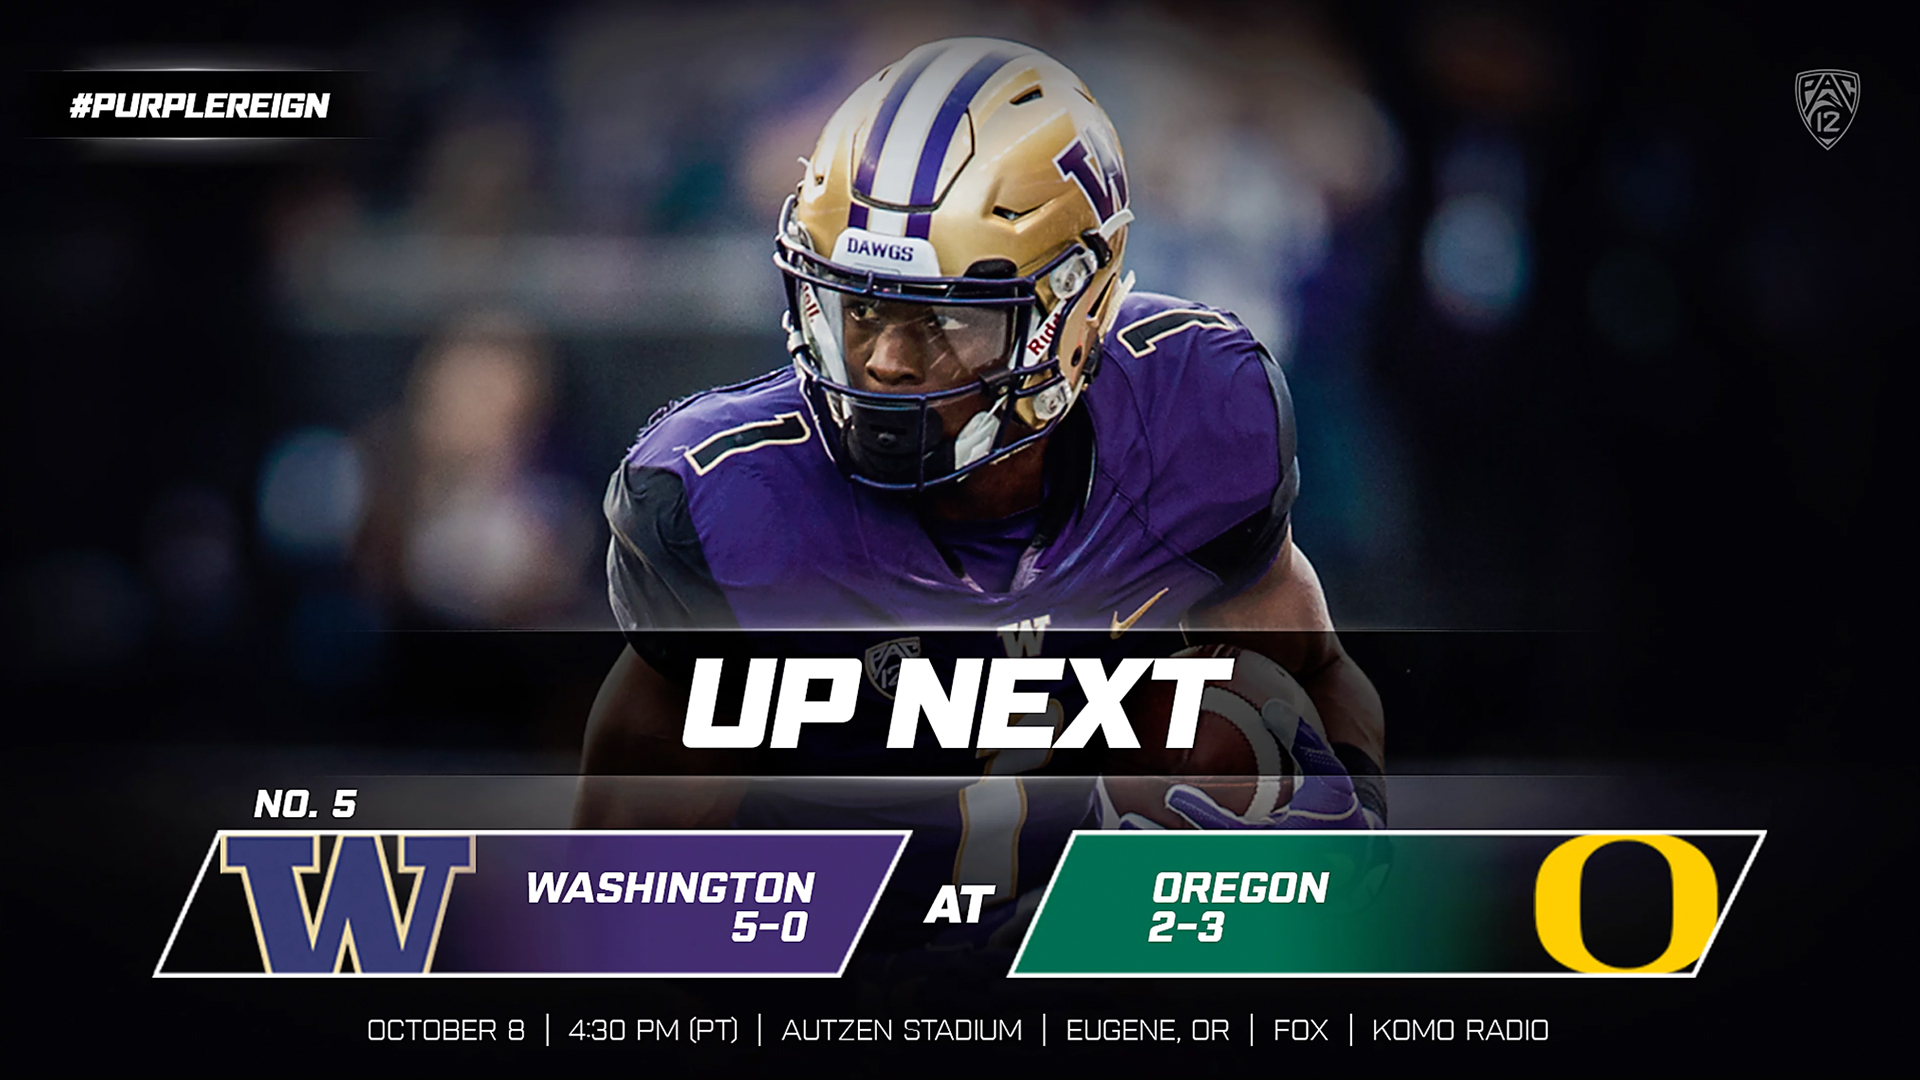 d44497ed7 No. 5 Dawgs Head South To Face Oregon - University of Washington ...